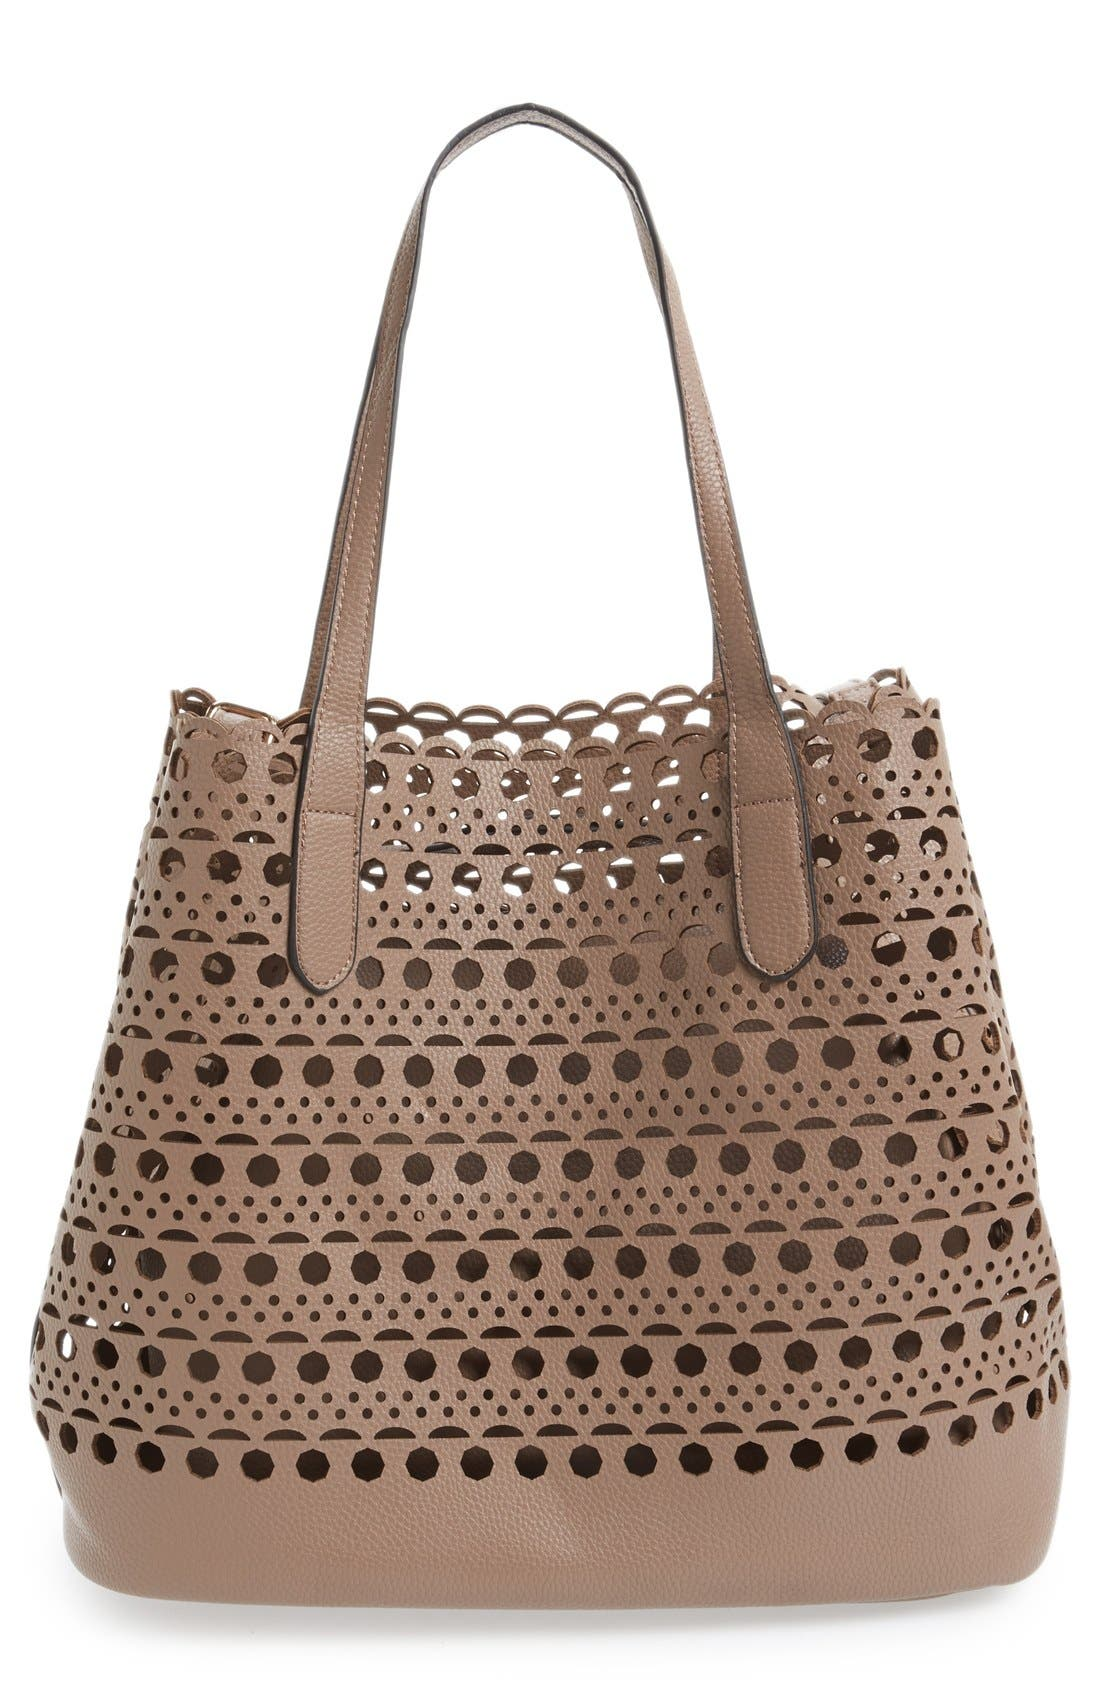 Main Image - Street Level Perforated Tote